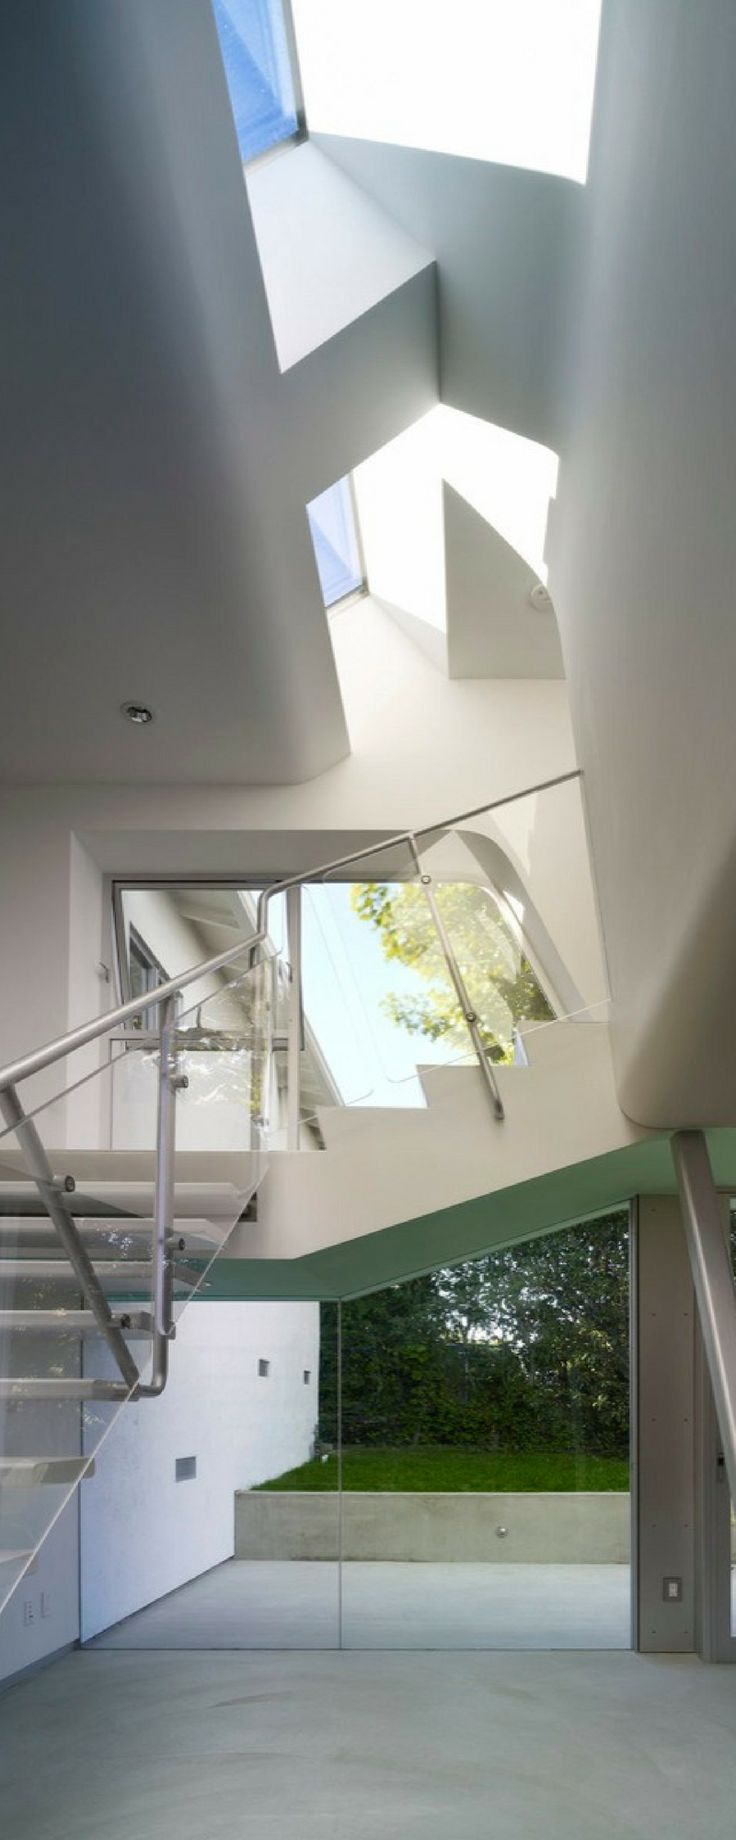 The owners of the Alan Voo House sold many of their unnecessary possessions in an effort to live more simply, inspired by the beautiful style of their newly renovated home. [Alan Voo House, Neil Denari, Architect Neil Denari, Modern House, Minimalist Design, Floor To Ceiling Windows, Concrete Floors, Stainless Steel Staircase]